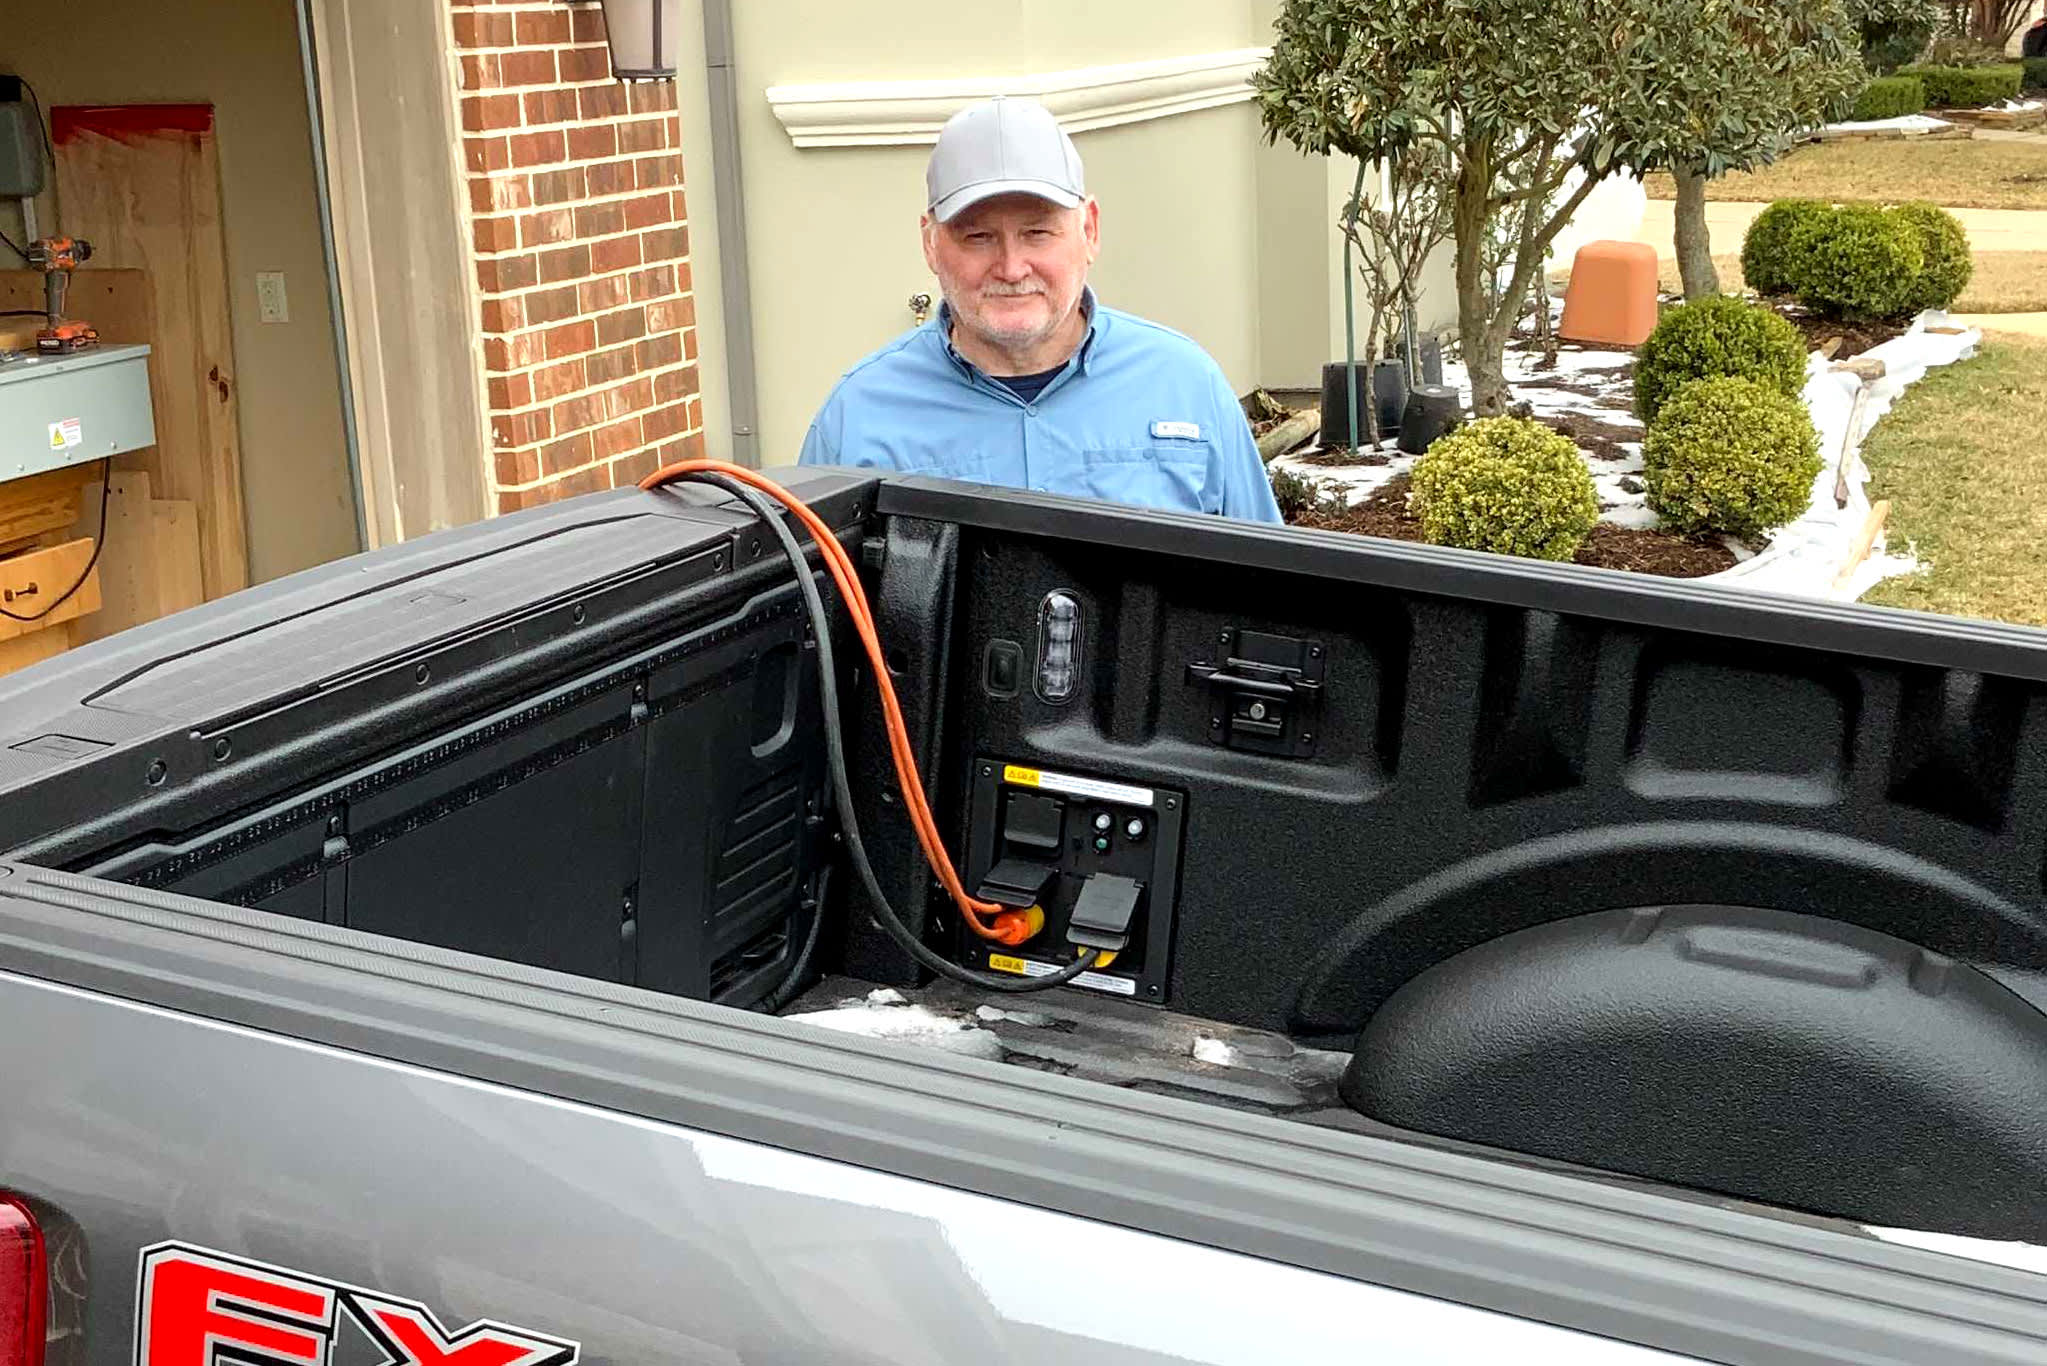 Some Texans utilize 2021 Ford F-150 hybrids to power houses in the middle of winter season storm thumbnail